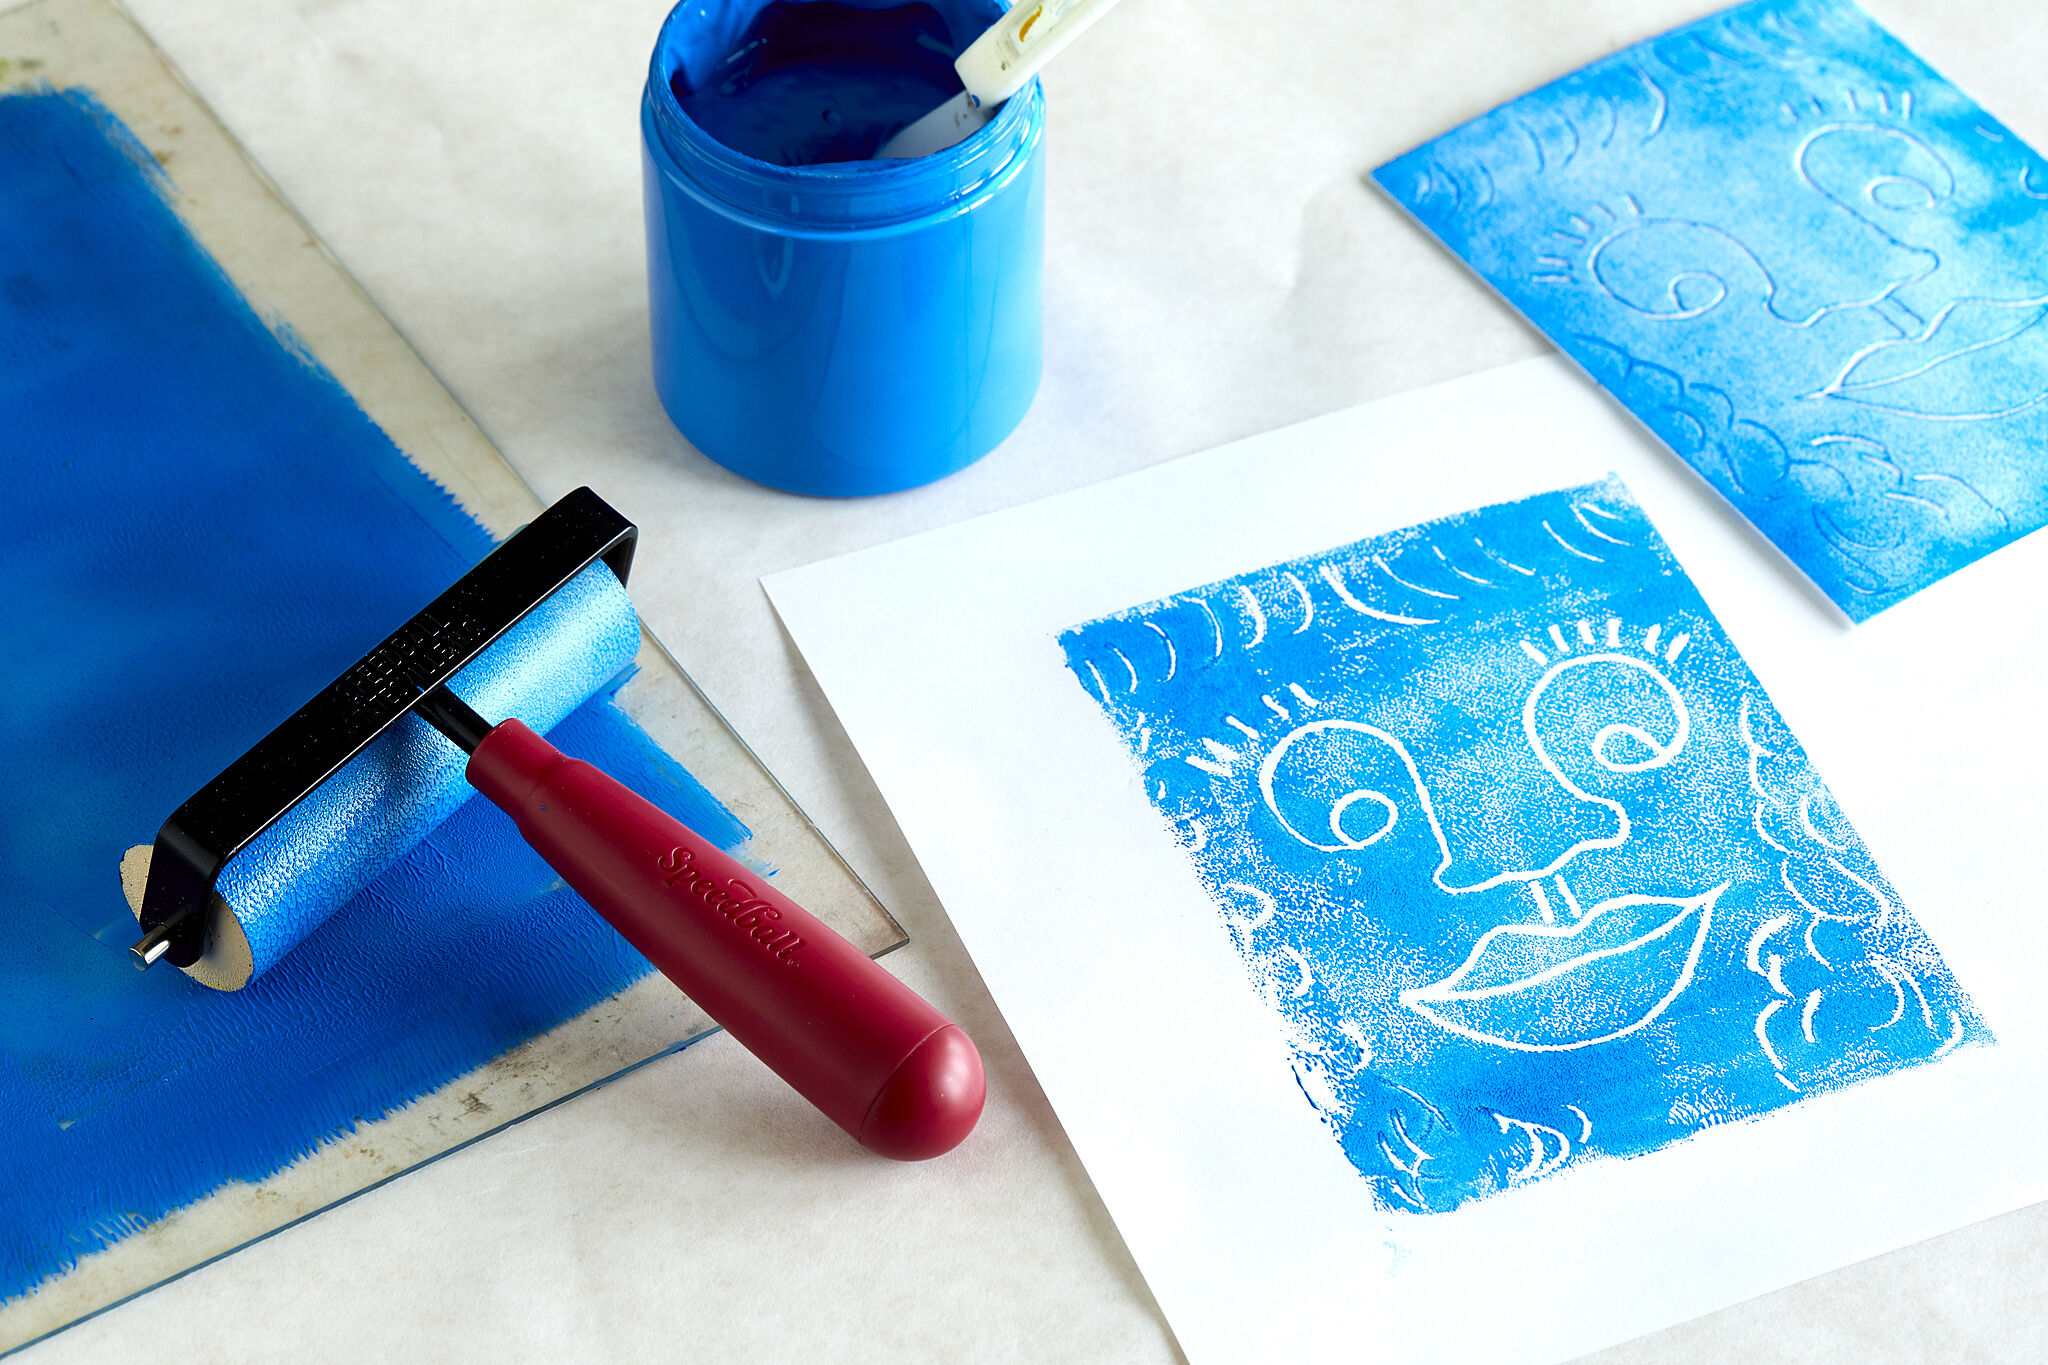 Art tool on a table such as paint, rollers, and paper.